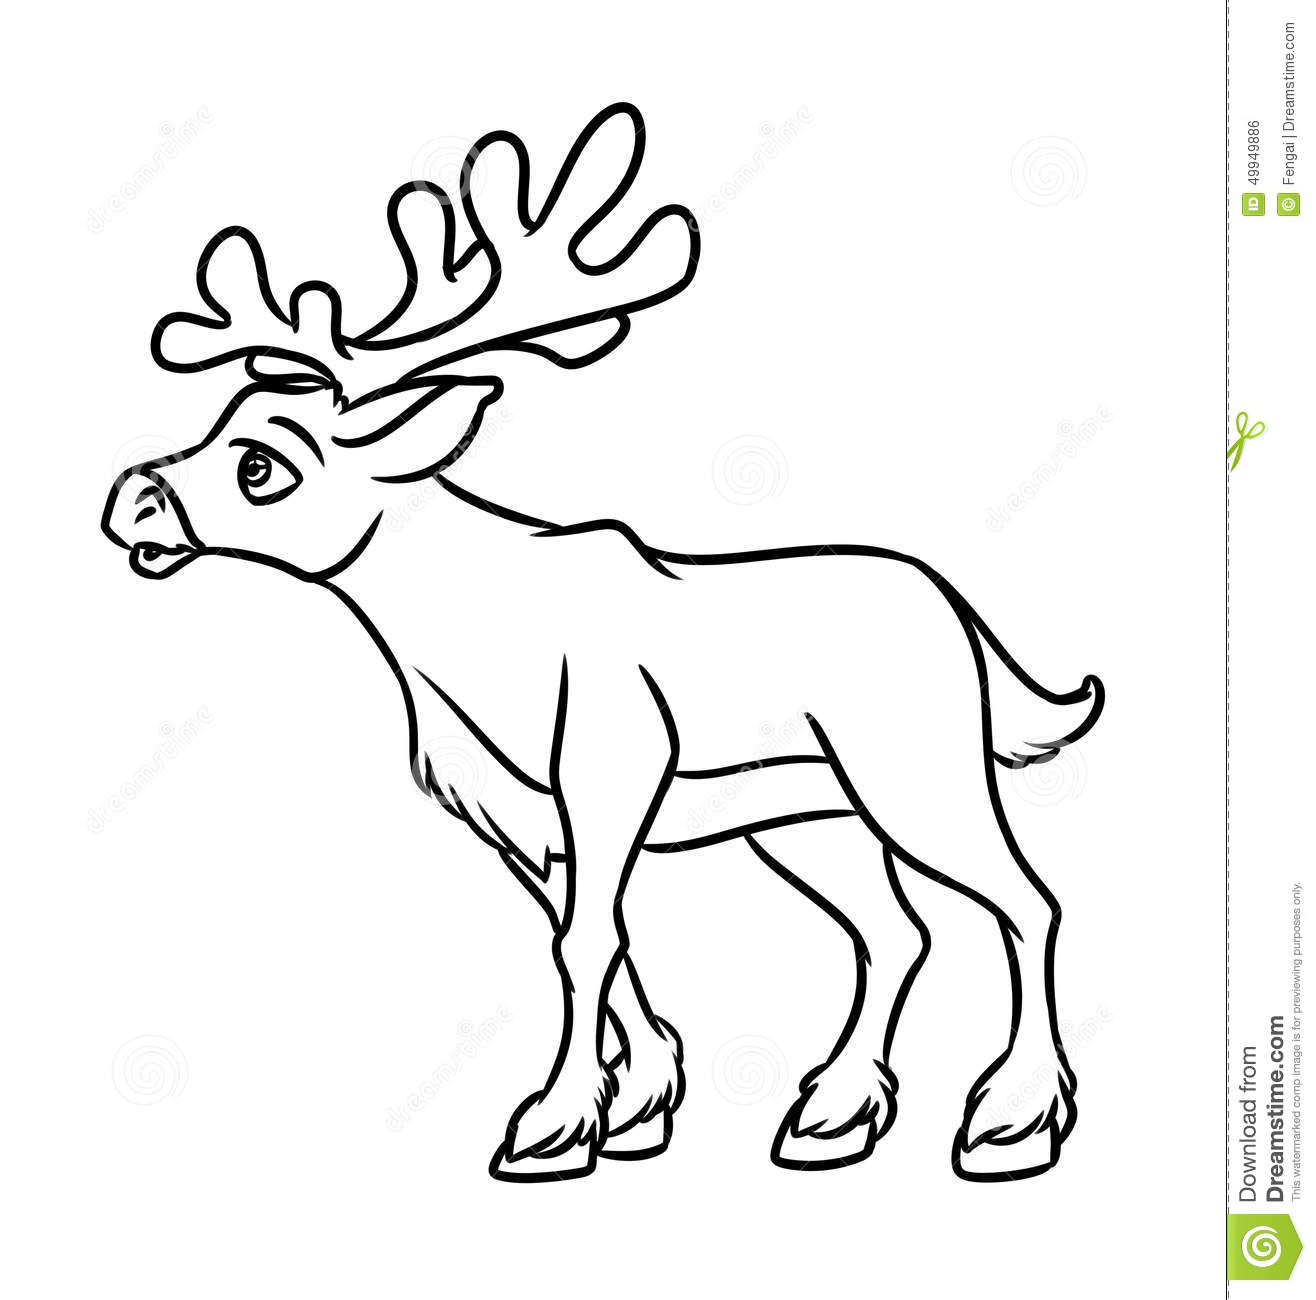 Contour Line Drawing Animal : Deer contour coloring page stock illustration image